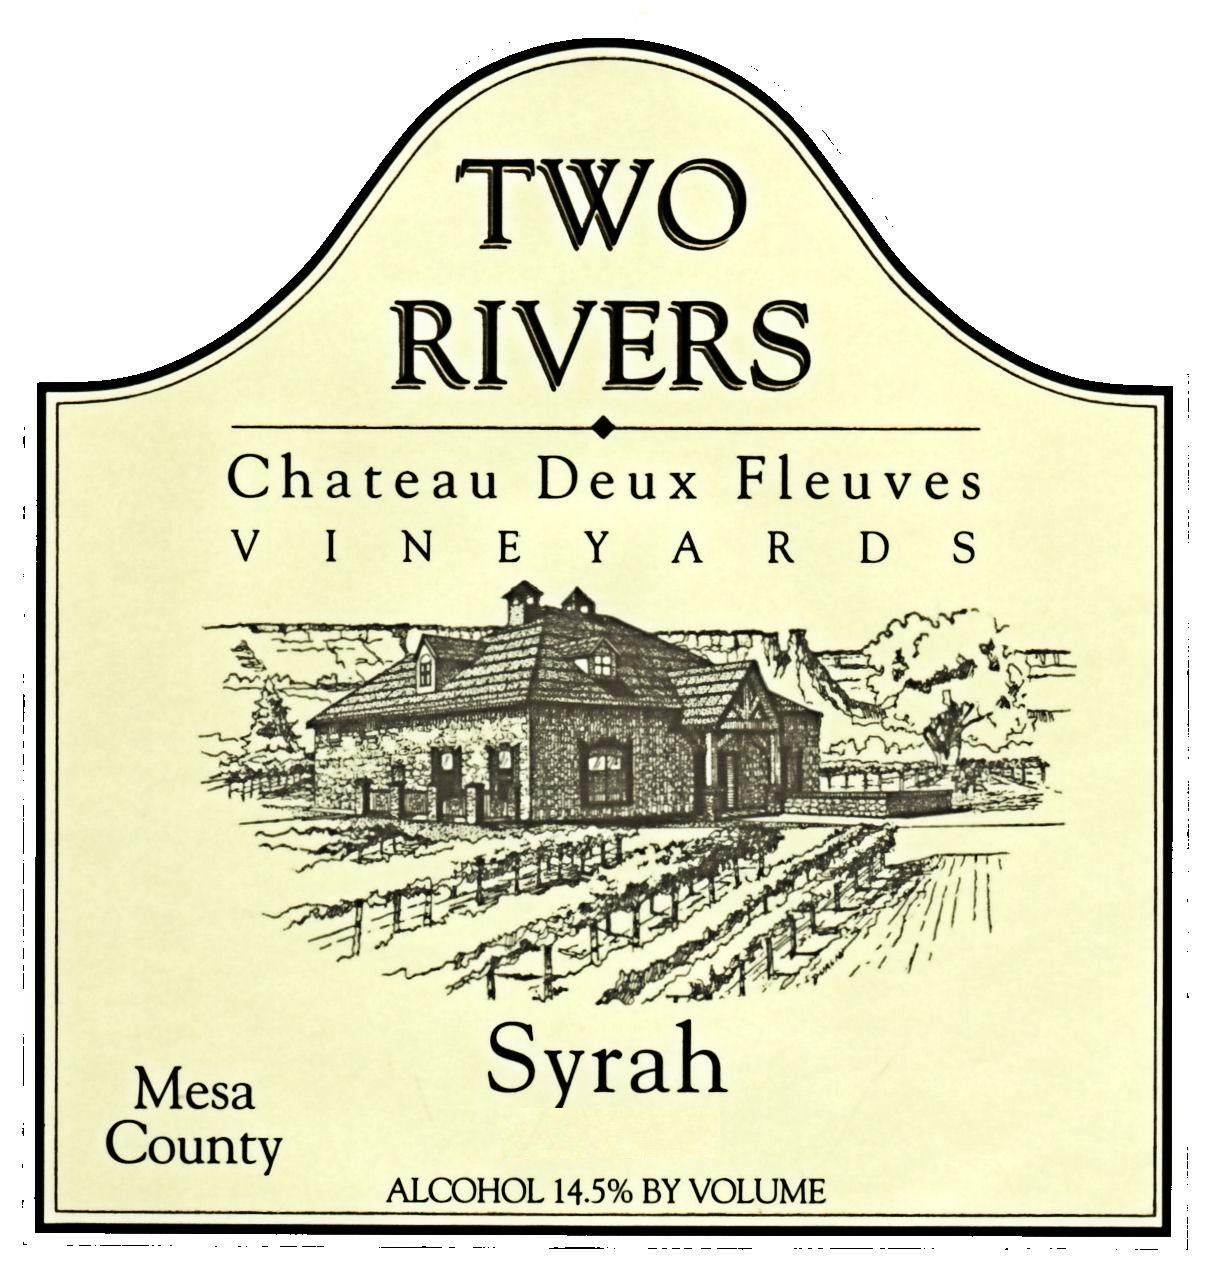 Two Rivers Winery and Chateau Mesa County Deux Fleuves Vineyards Syrah 2014 Front Label